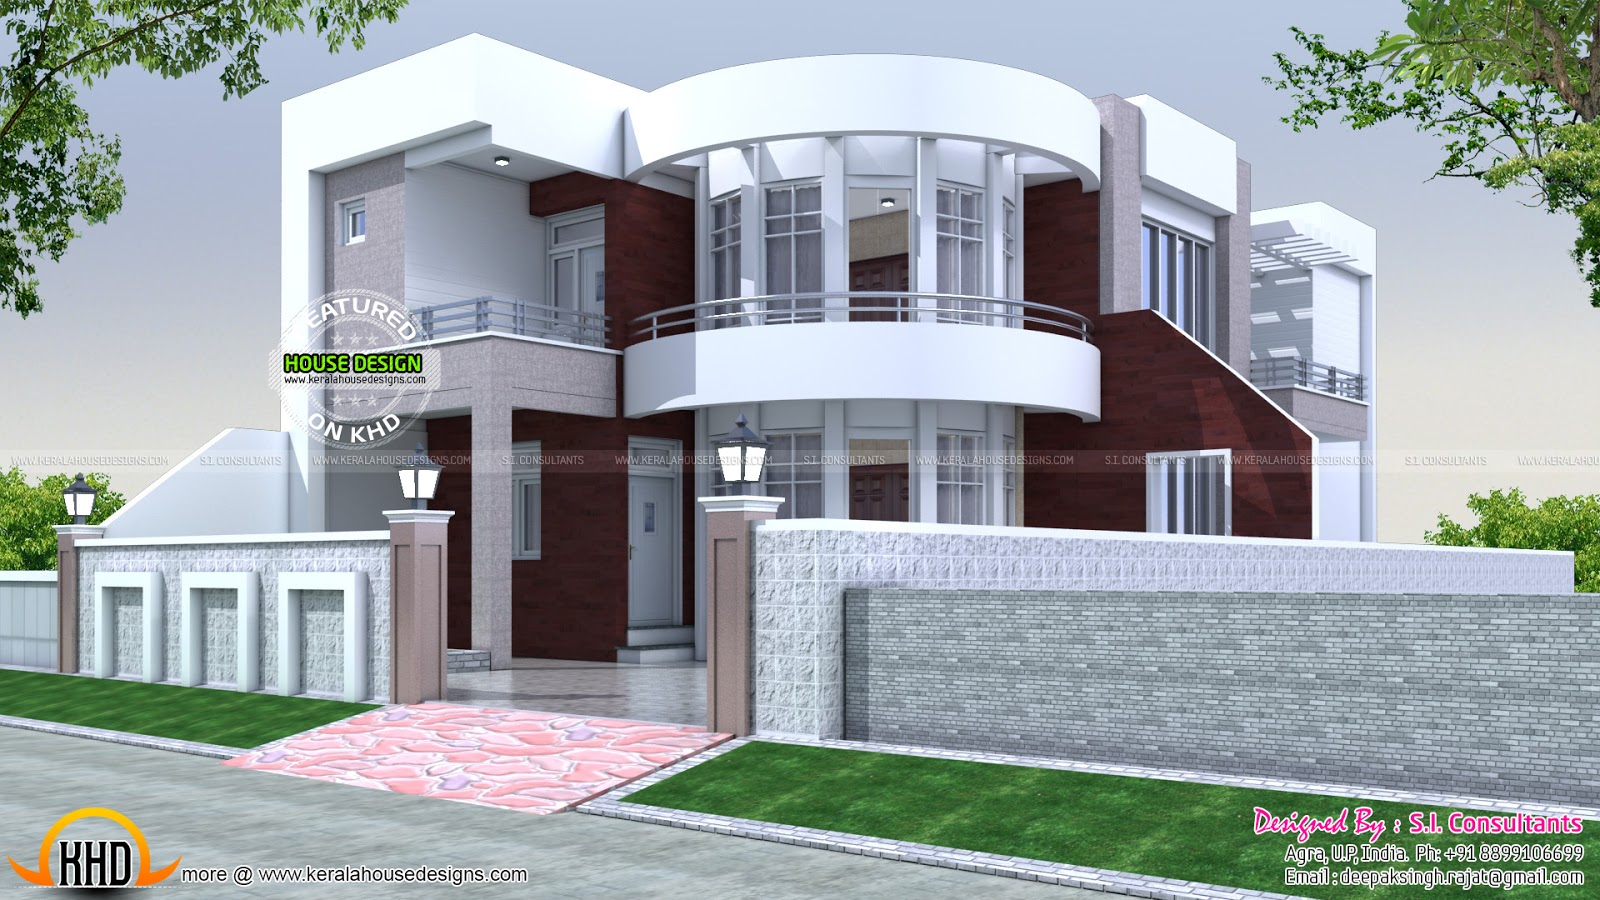 40x75 cute modern house plan kerala home design and floor plans - Calculating square footage of a house pict ...